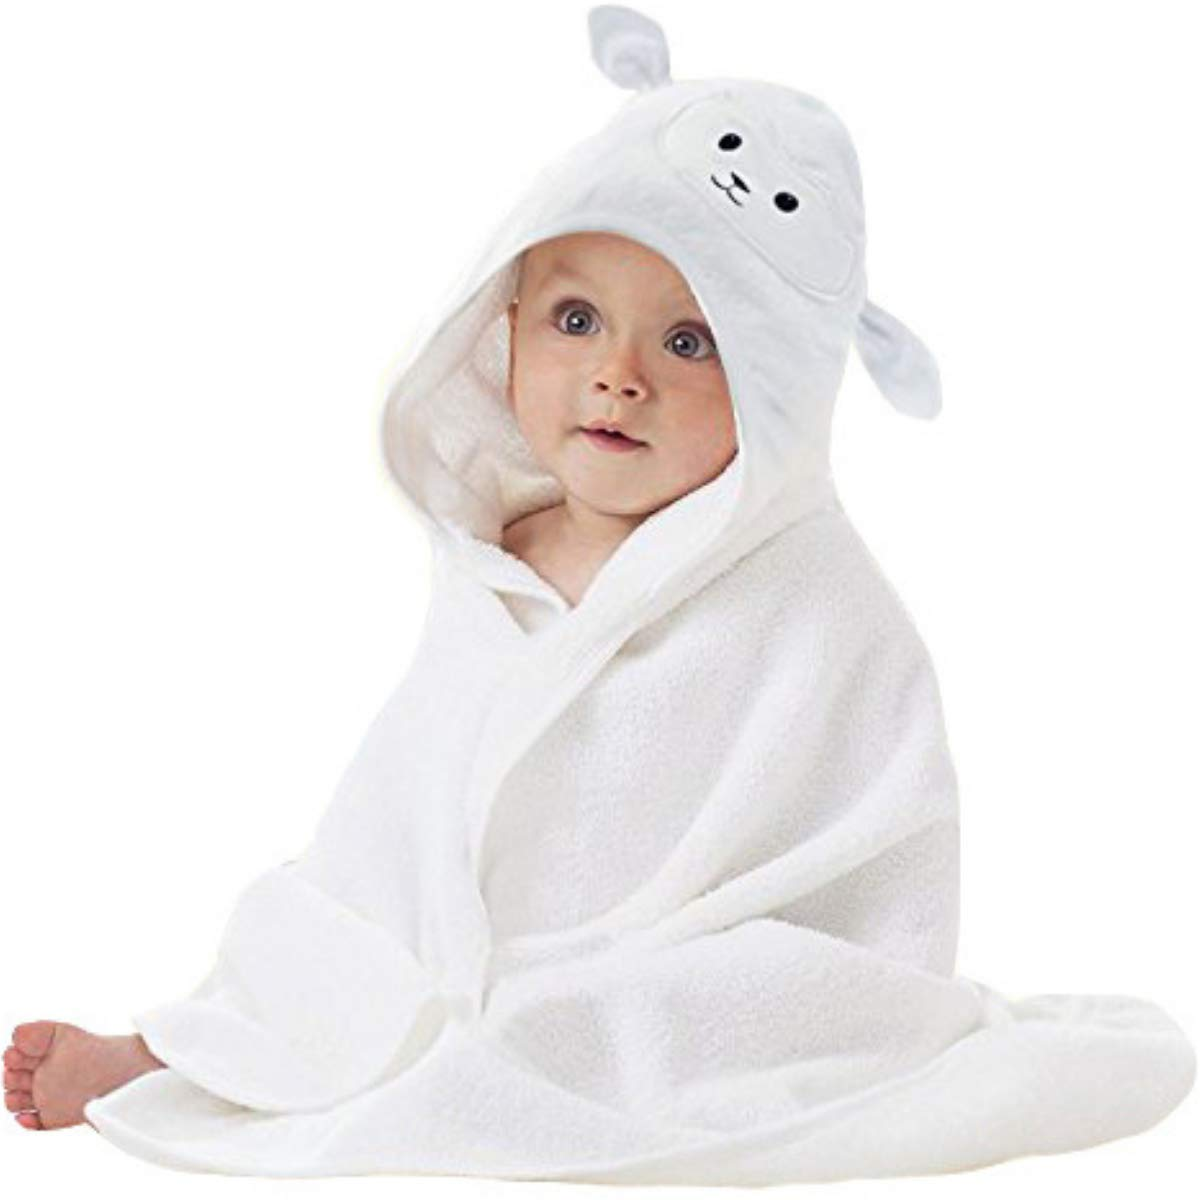 Amazon.: Baby Hooded Towel | Ultra Soft and Super Absorbent